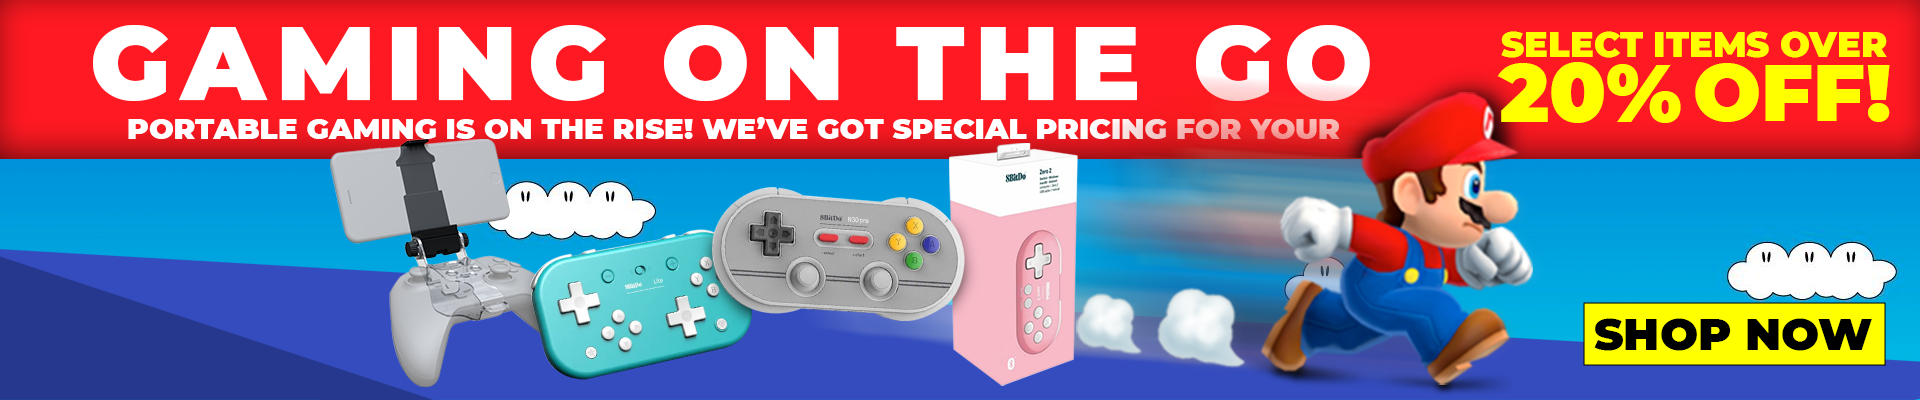 Gaming on the Go Sale